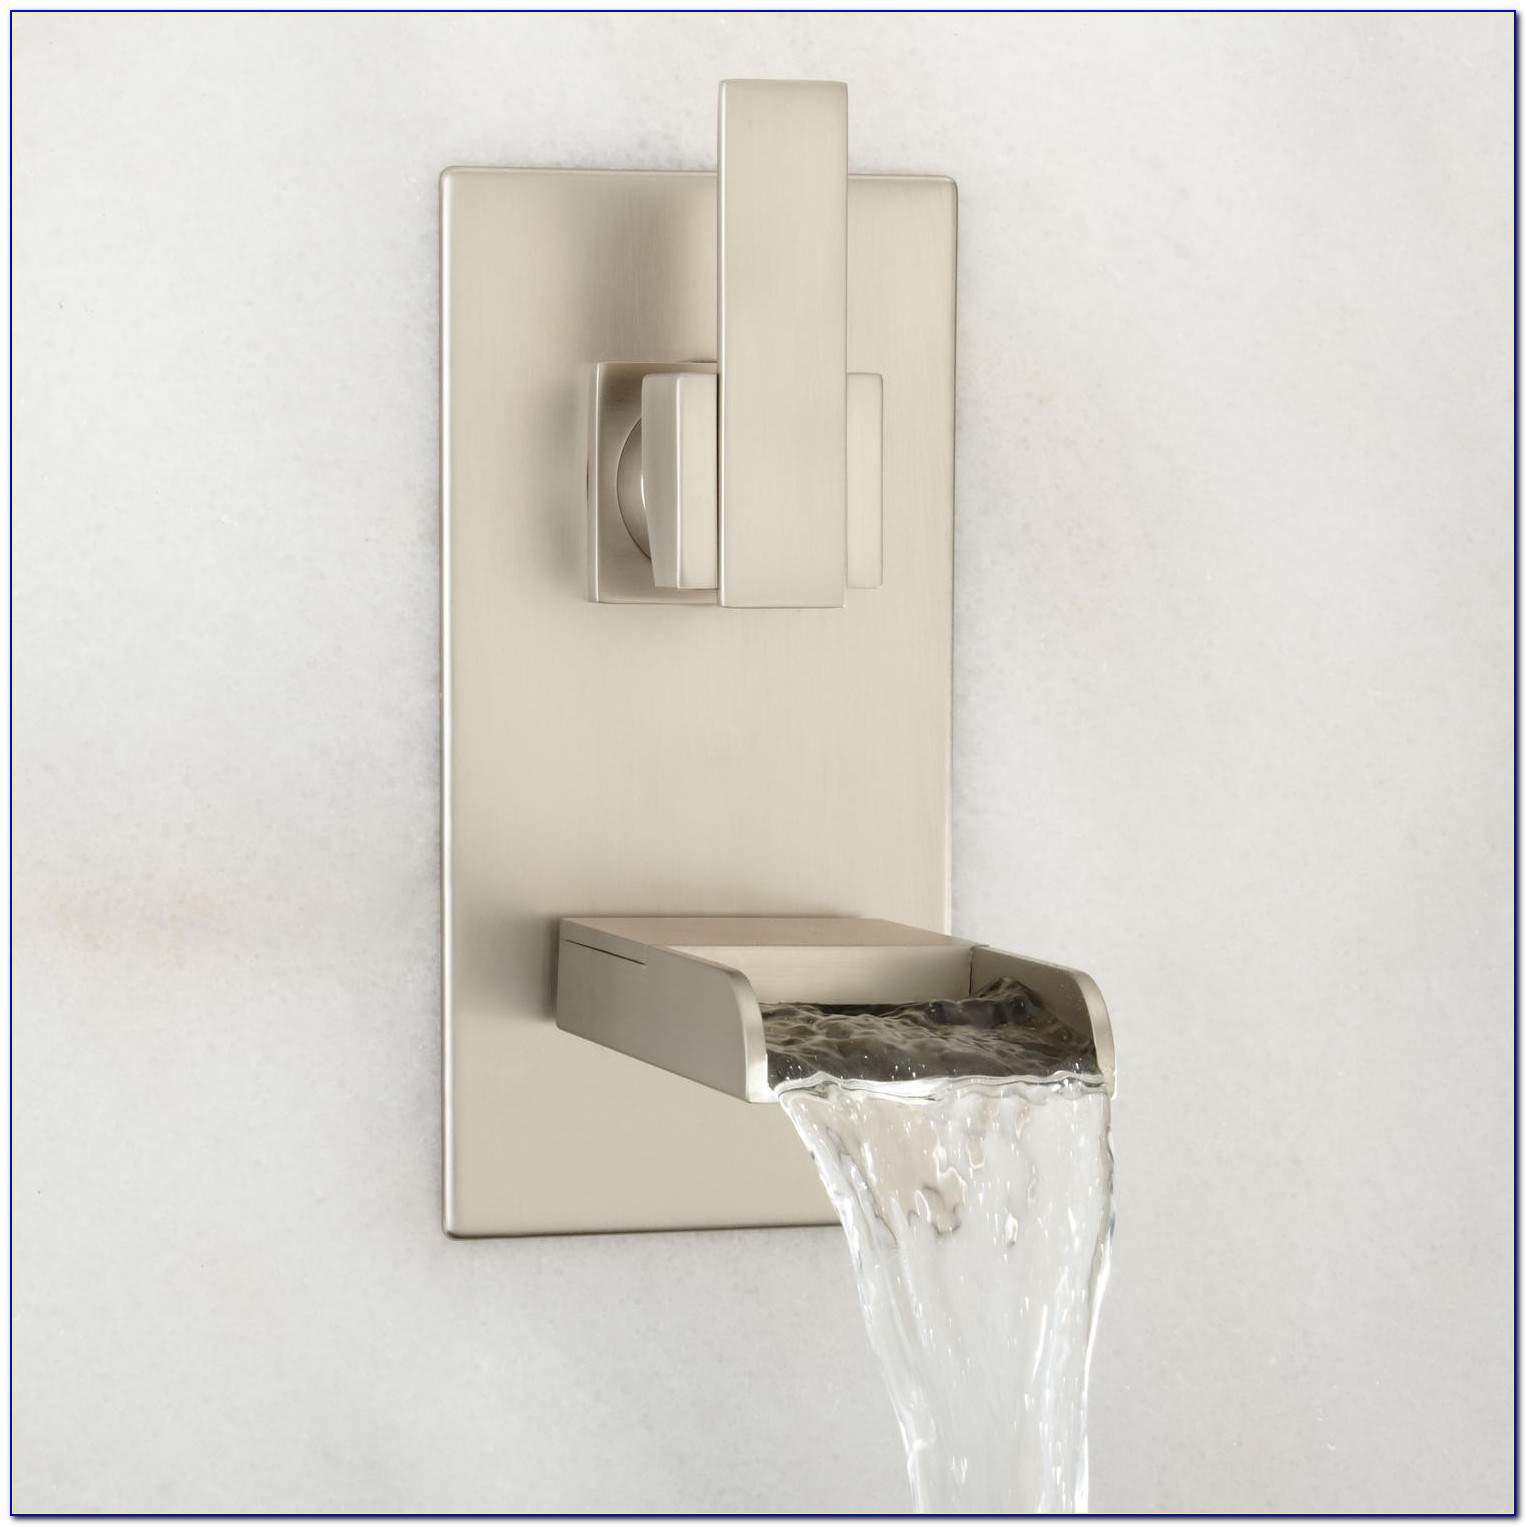 Wall Mount Bathroom Sink Faucet For Sale